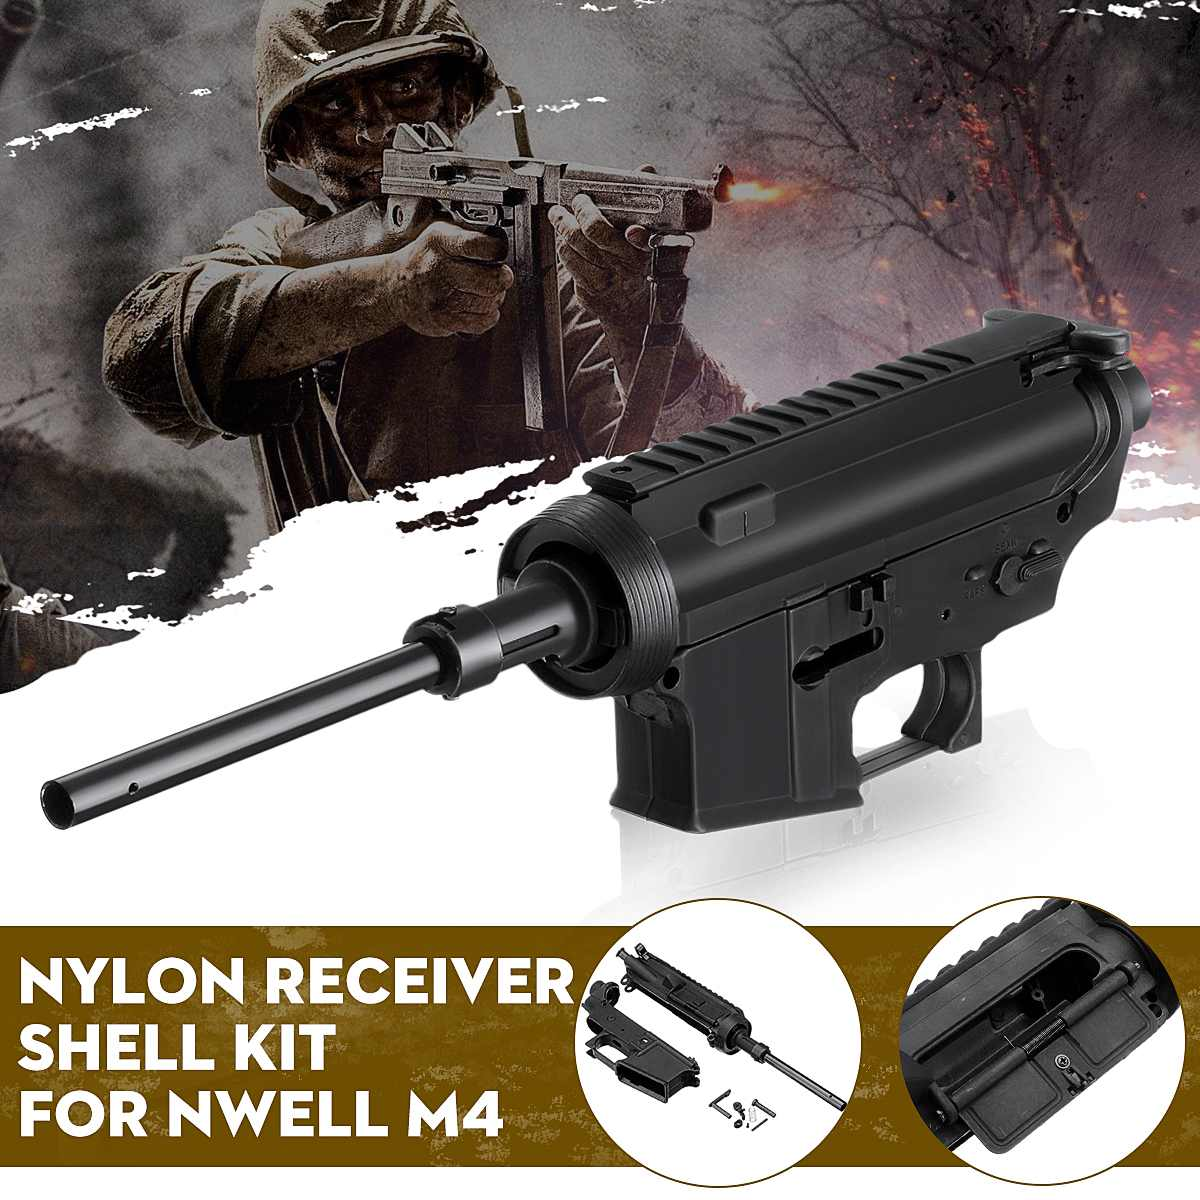 Black Nylon Receiver Shell Kit For Nwell M4 Gel Ball For Blaster Toy Accessories